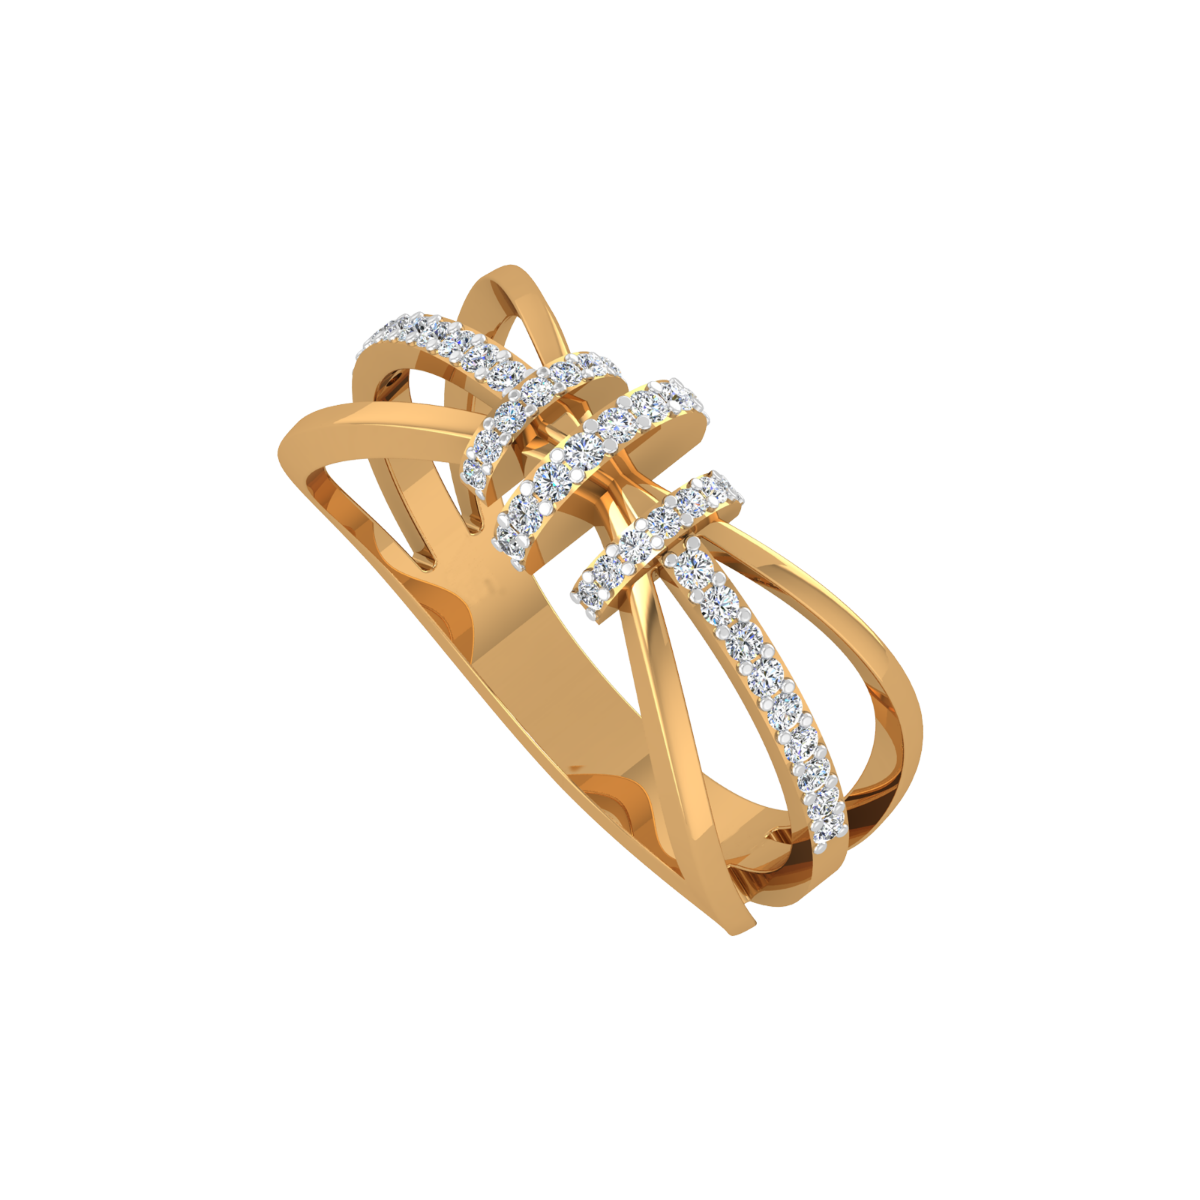 The Drama Lover Gold Diamond Ring